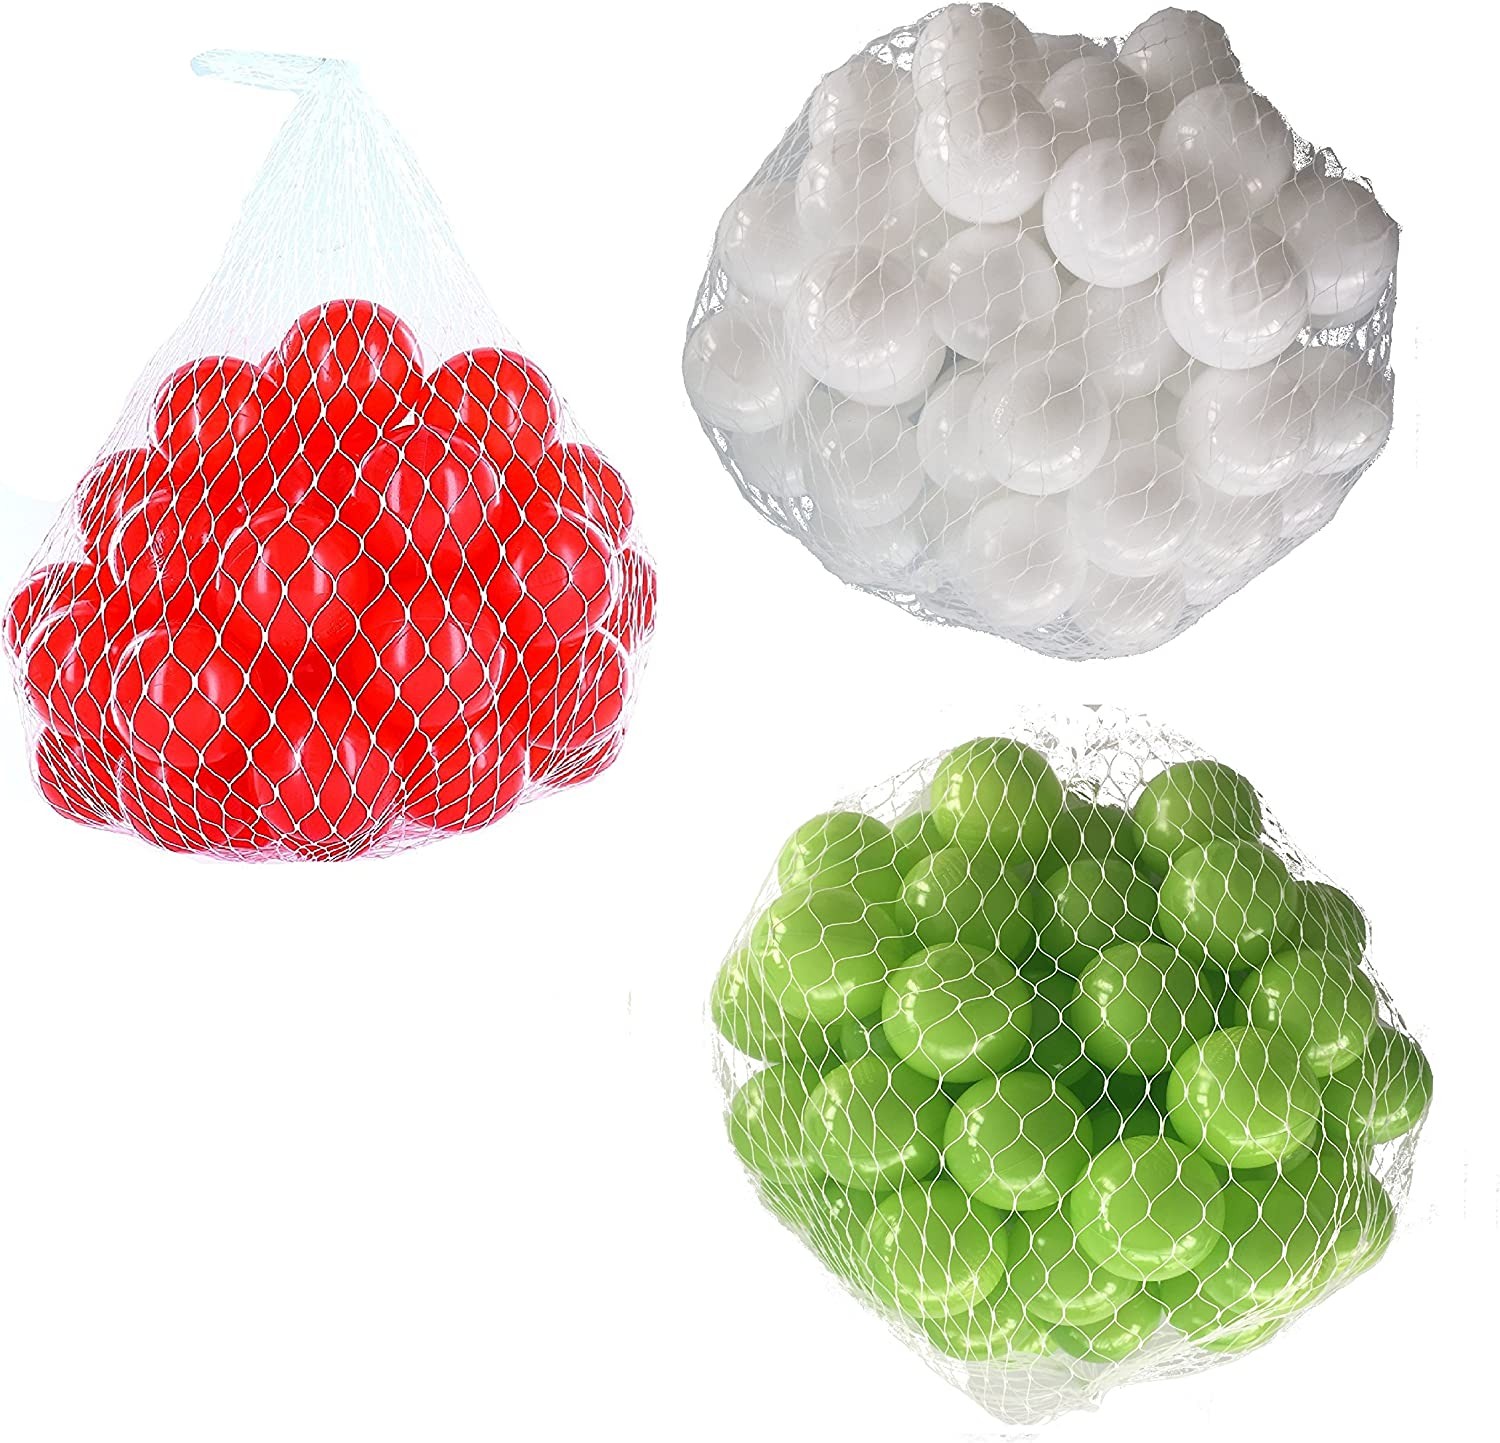 Balls For Ball Pool Mix Set with Light Green, White and Red